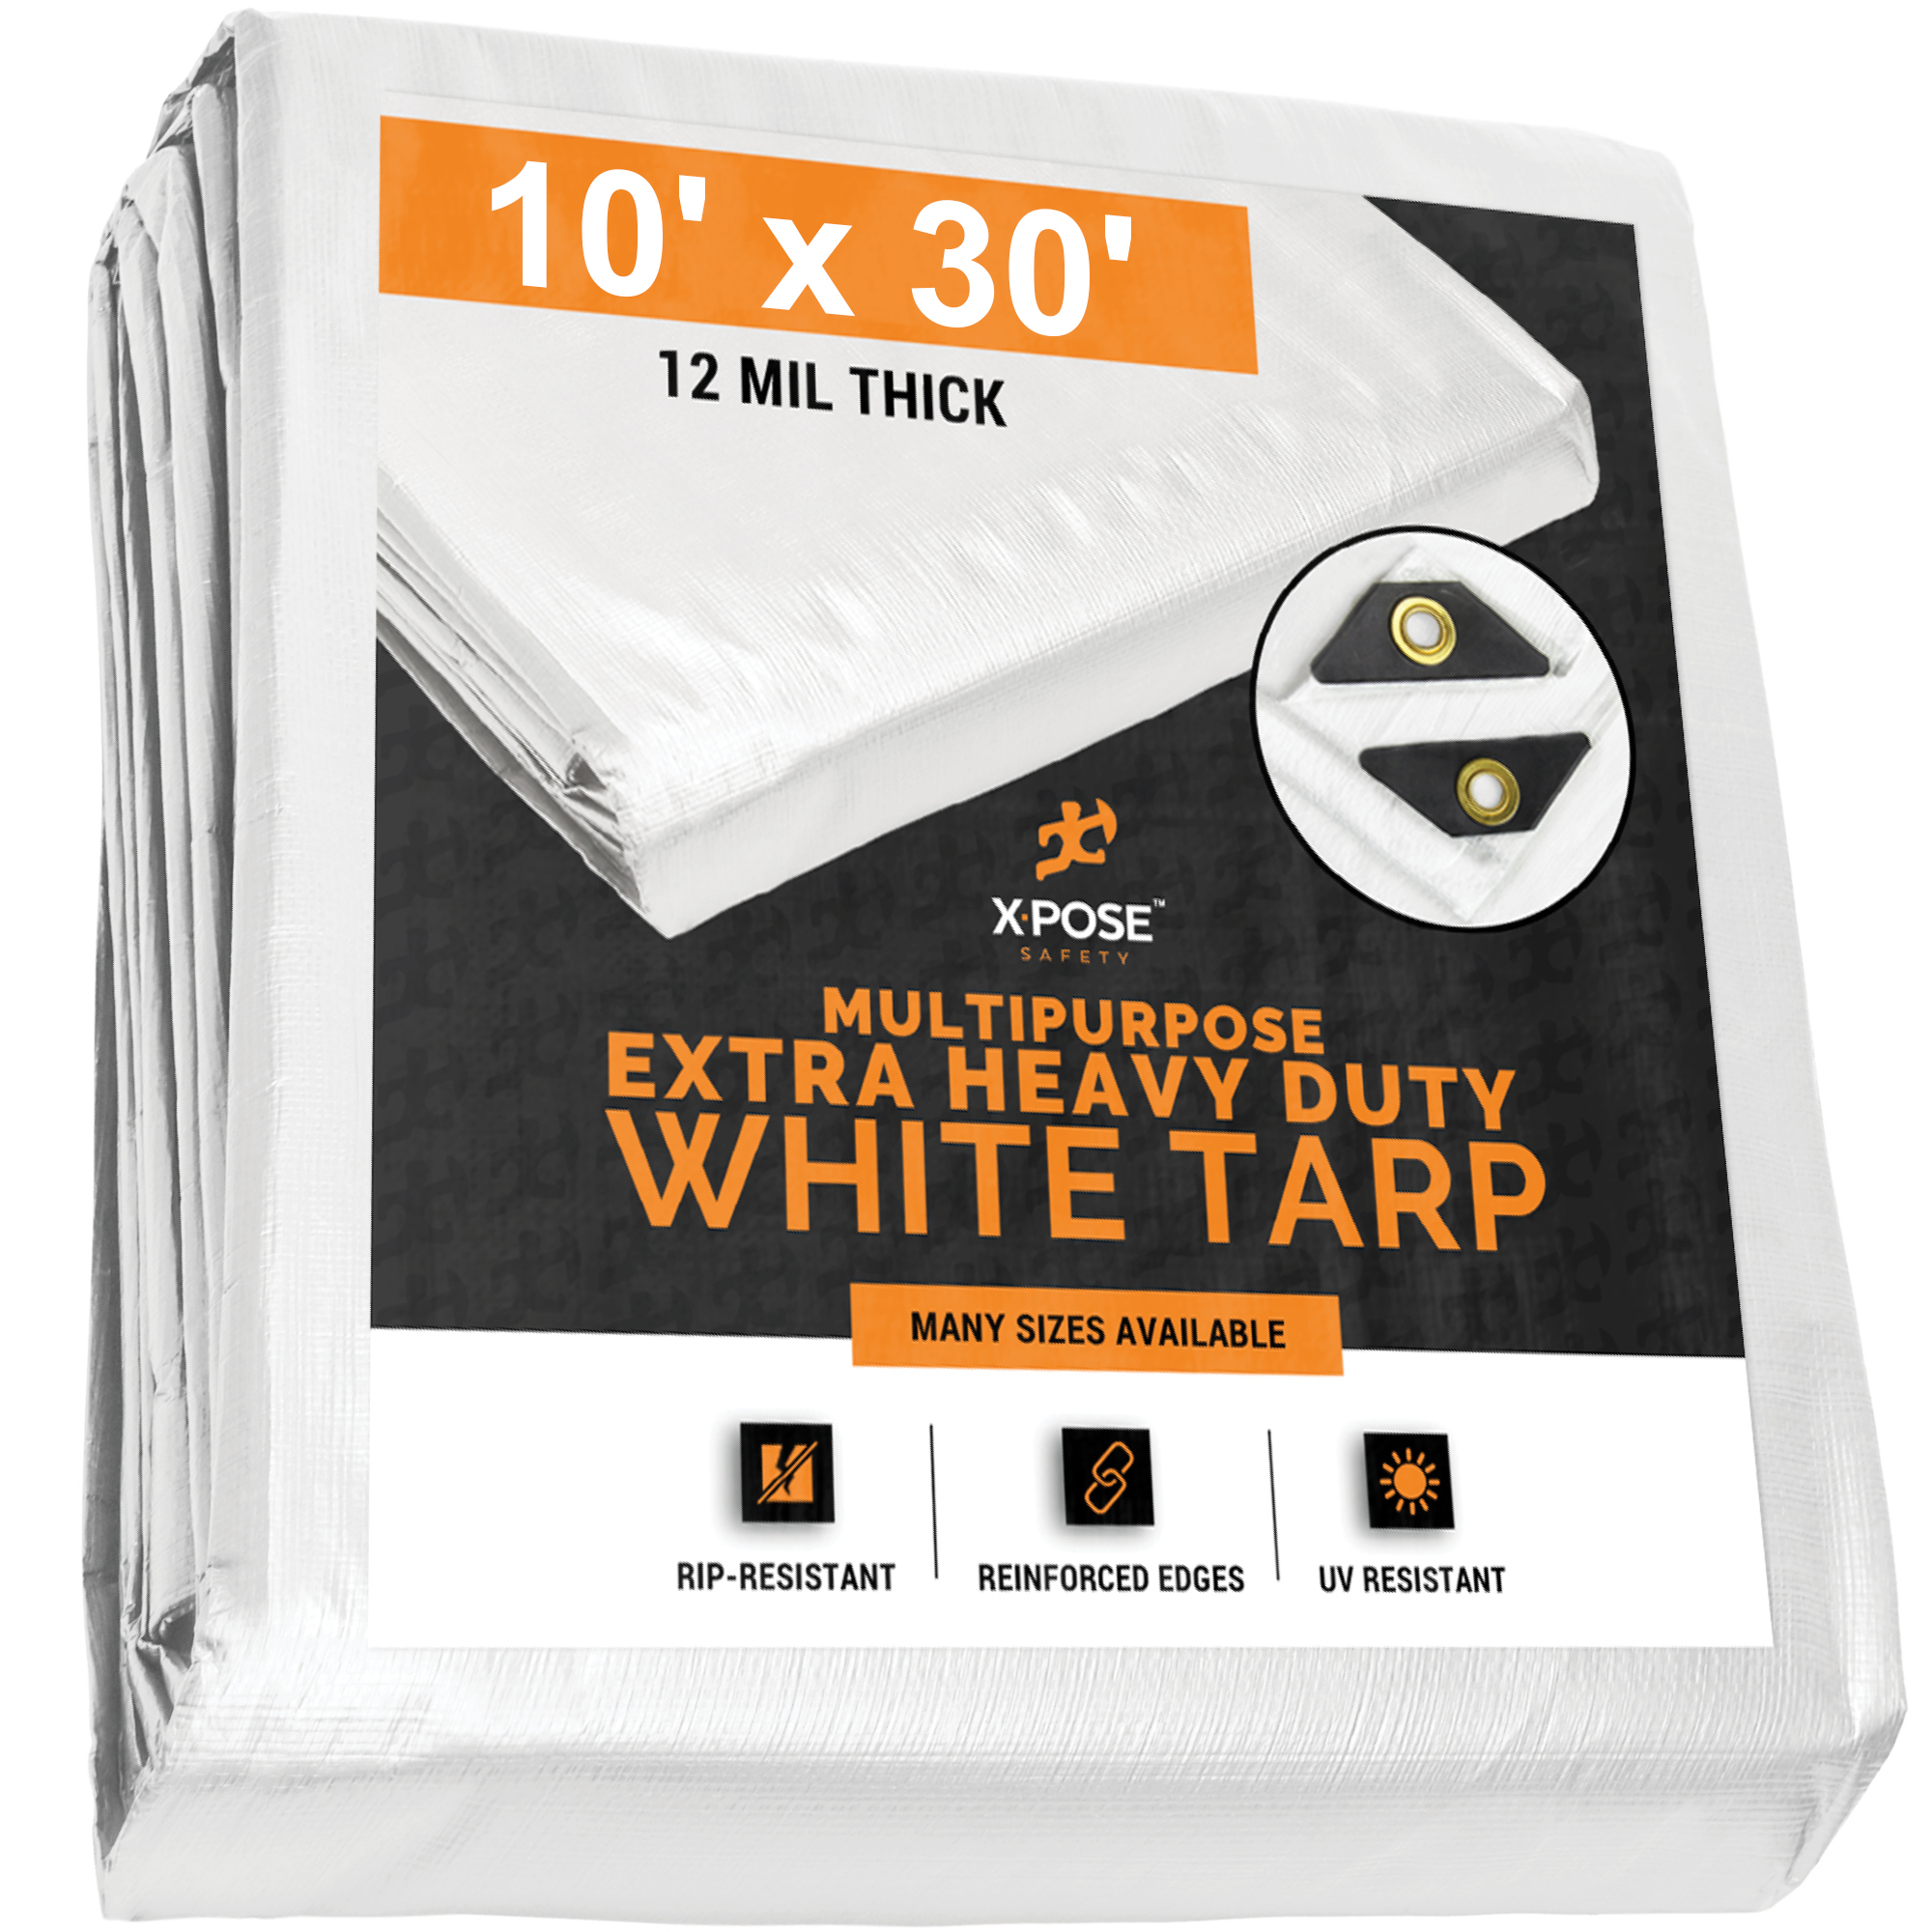 Heavy Duty White Poly Tarp 10' x 30' Multipurpose Protective Cover - Durable, Waterproof, Weather Proof, Rip and Tear Resistant - Extra Thick 12 Mil Polyethylene WHD-1030-X